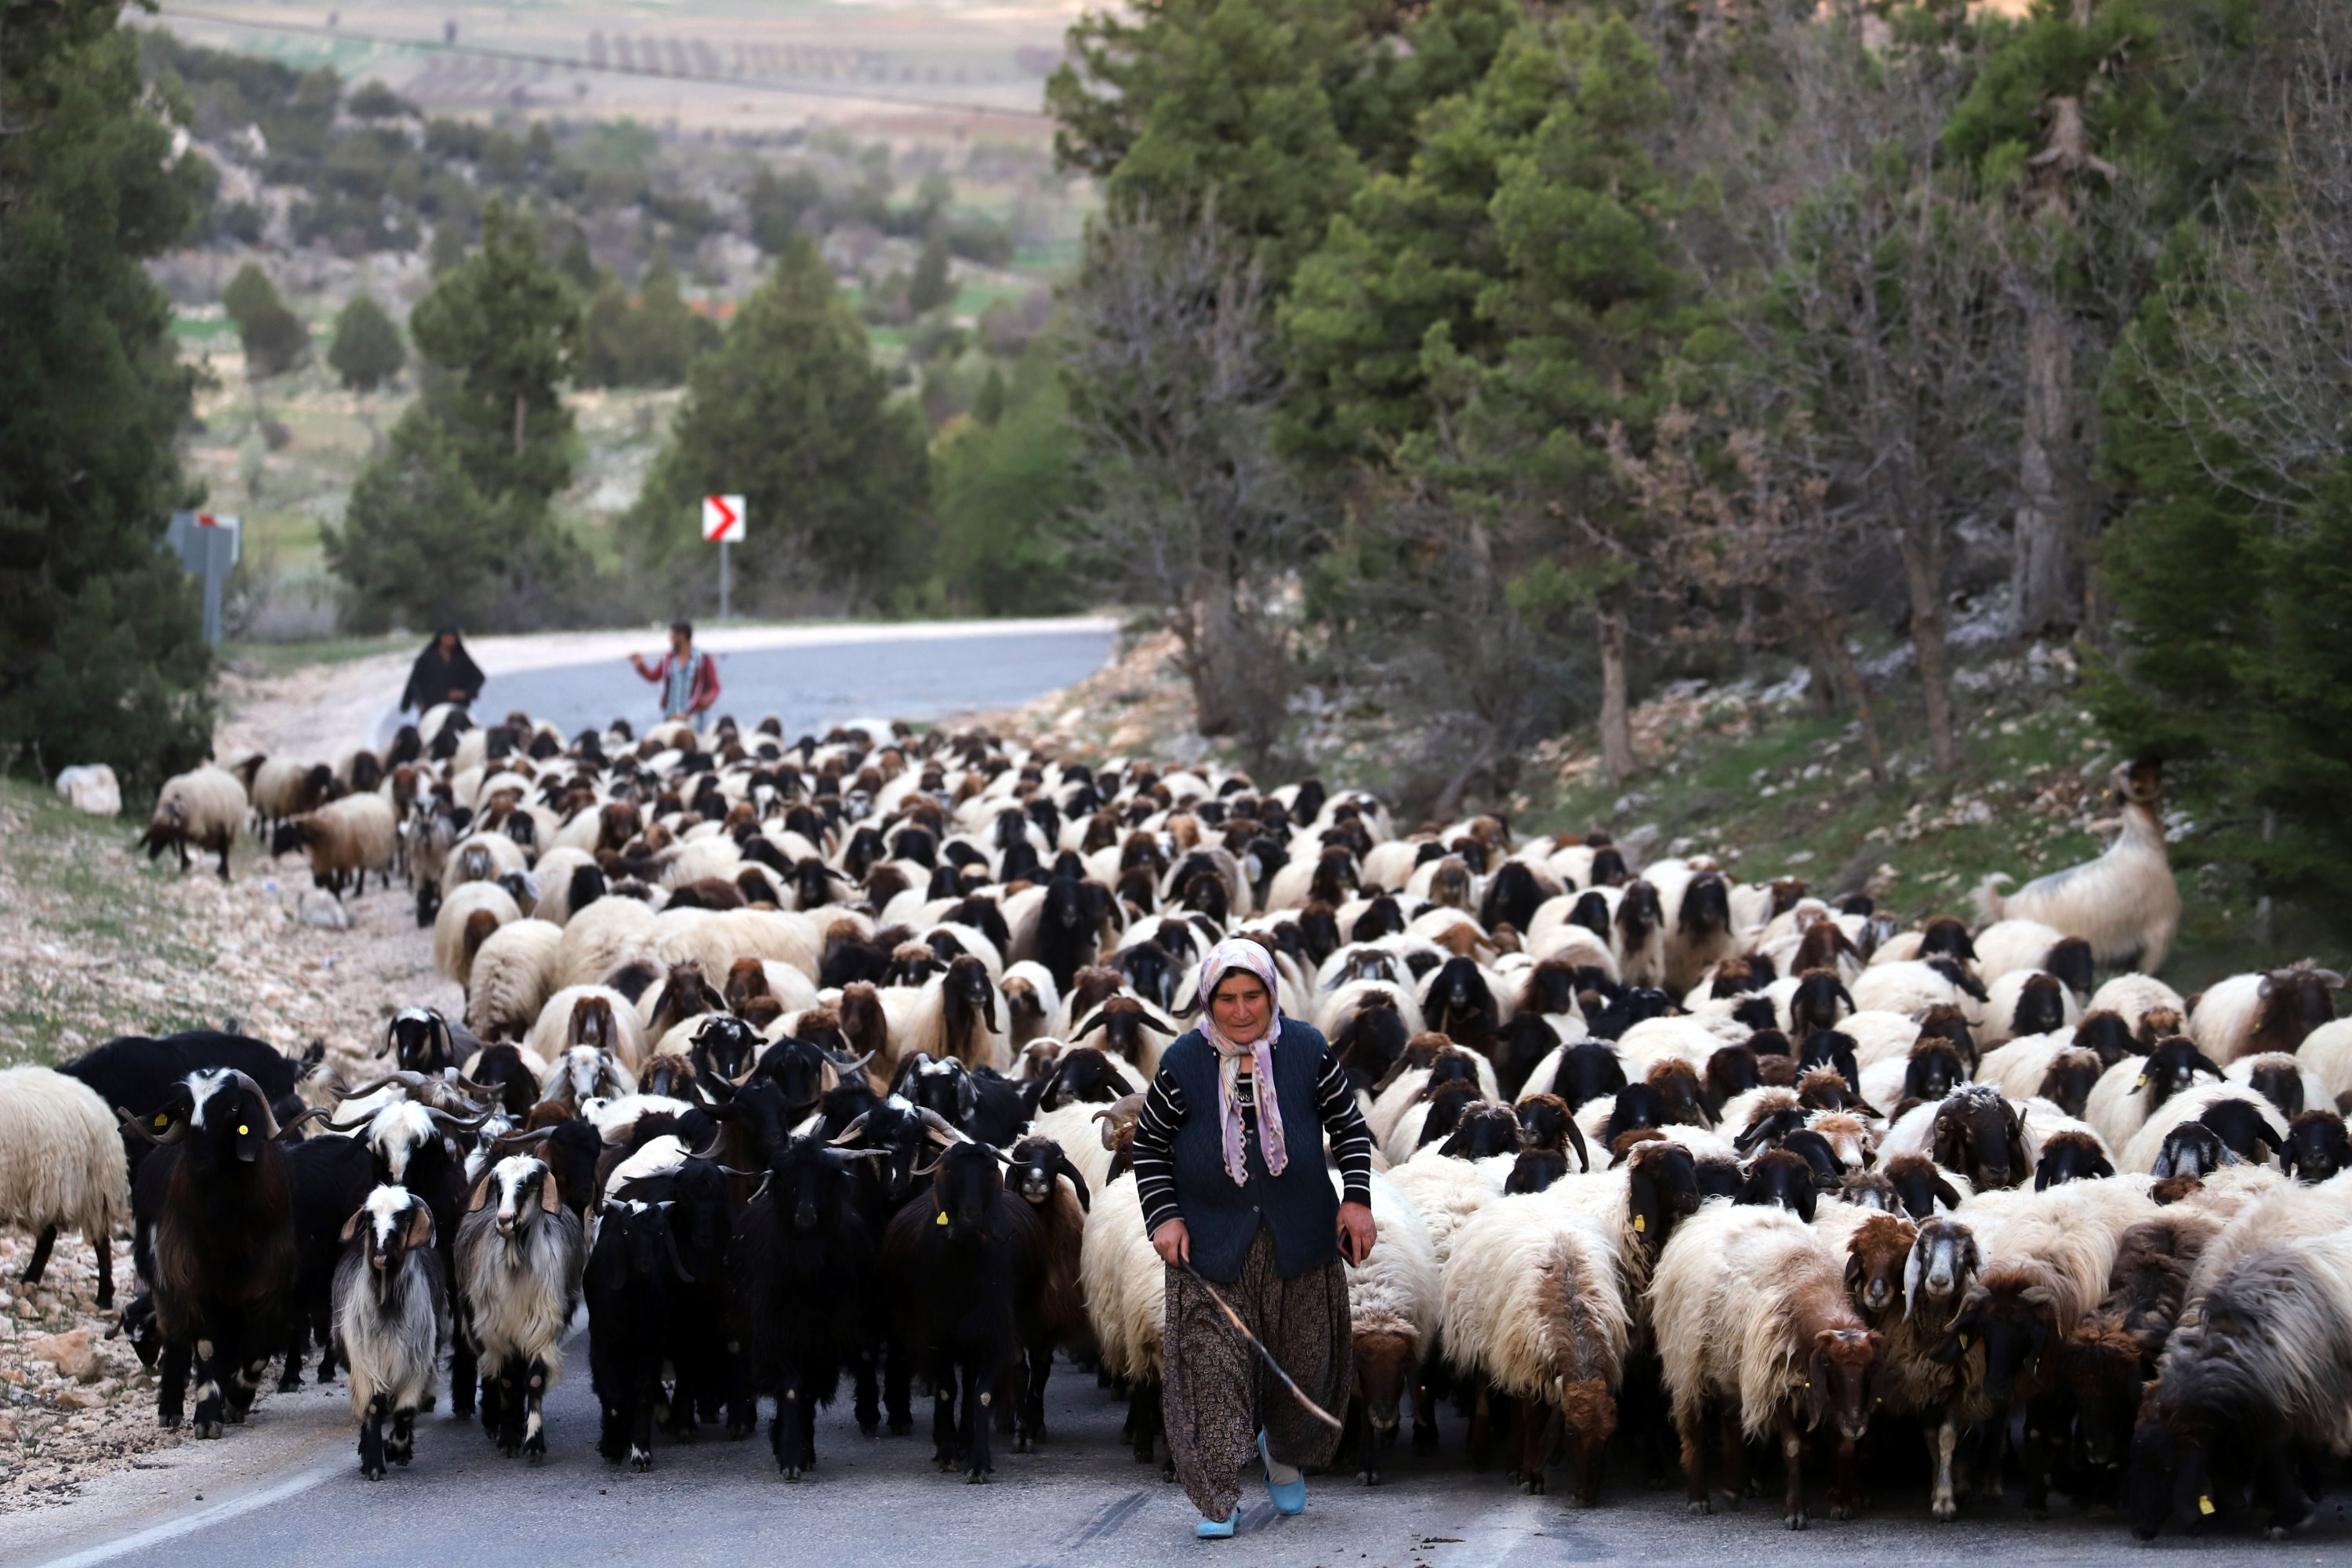 Nomads with their flock are on their way to the cooler highlands in the Konya and Karaman districts to spend the spring and summer months, in Mersin, Turkey, May 4, 2021. (DHA Photo)